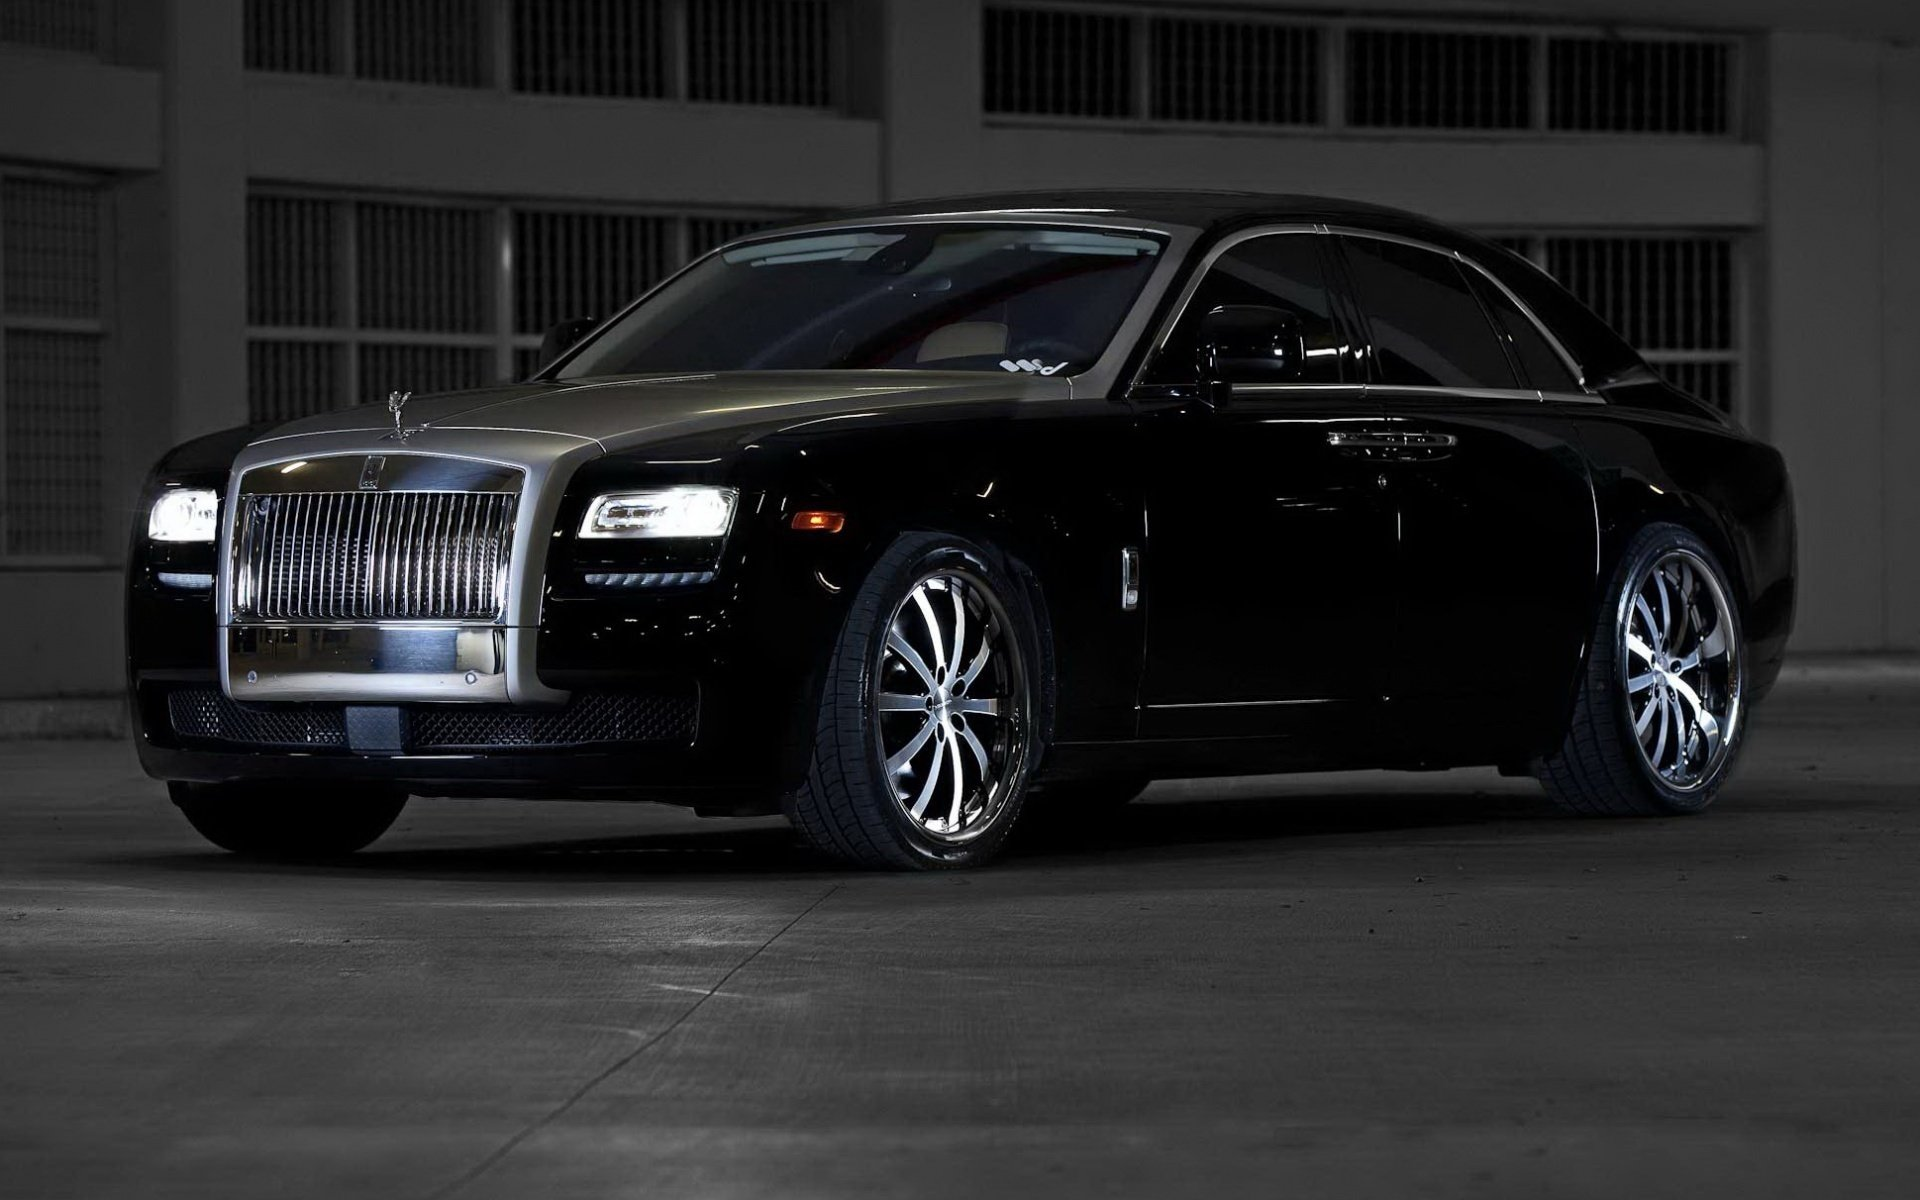 Awesome Rolls Royce free background ID:306004 for hd 1920x1200 PC